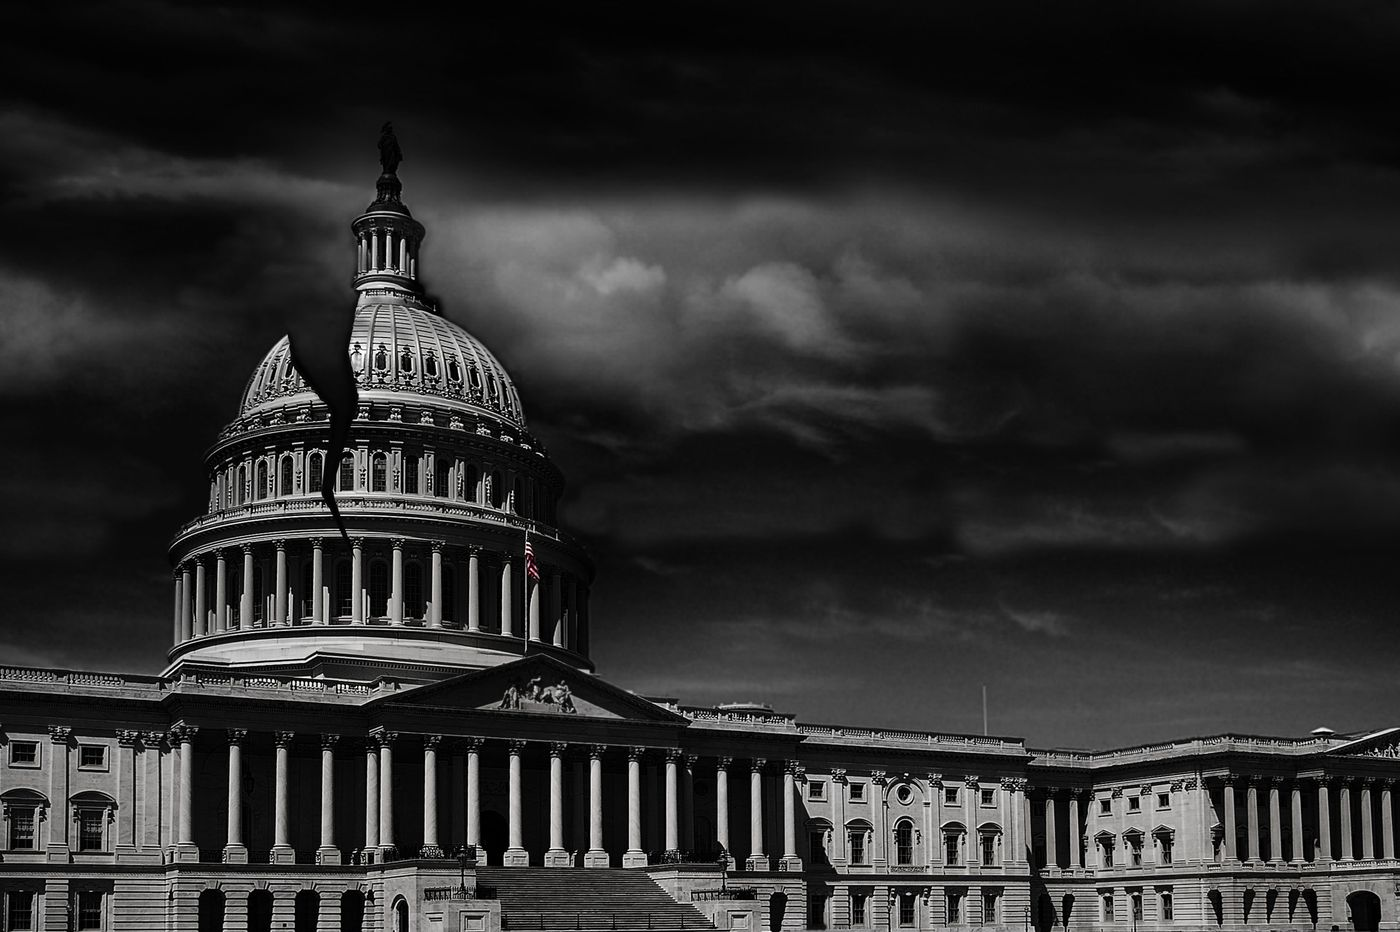 Congress, egged on by the polar extremes, is out of step with the rest of us | Michael Smerconish